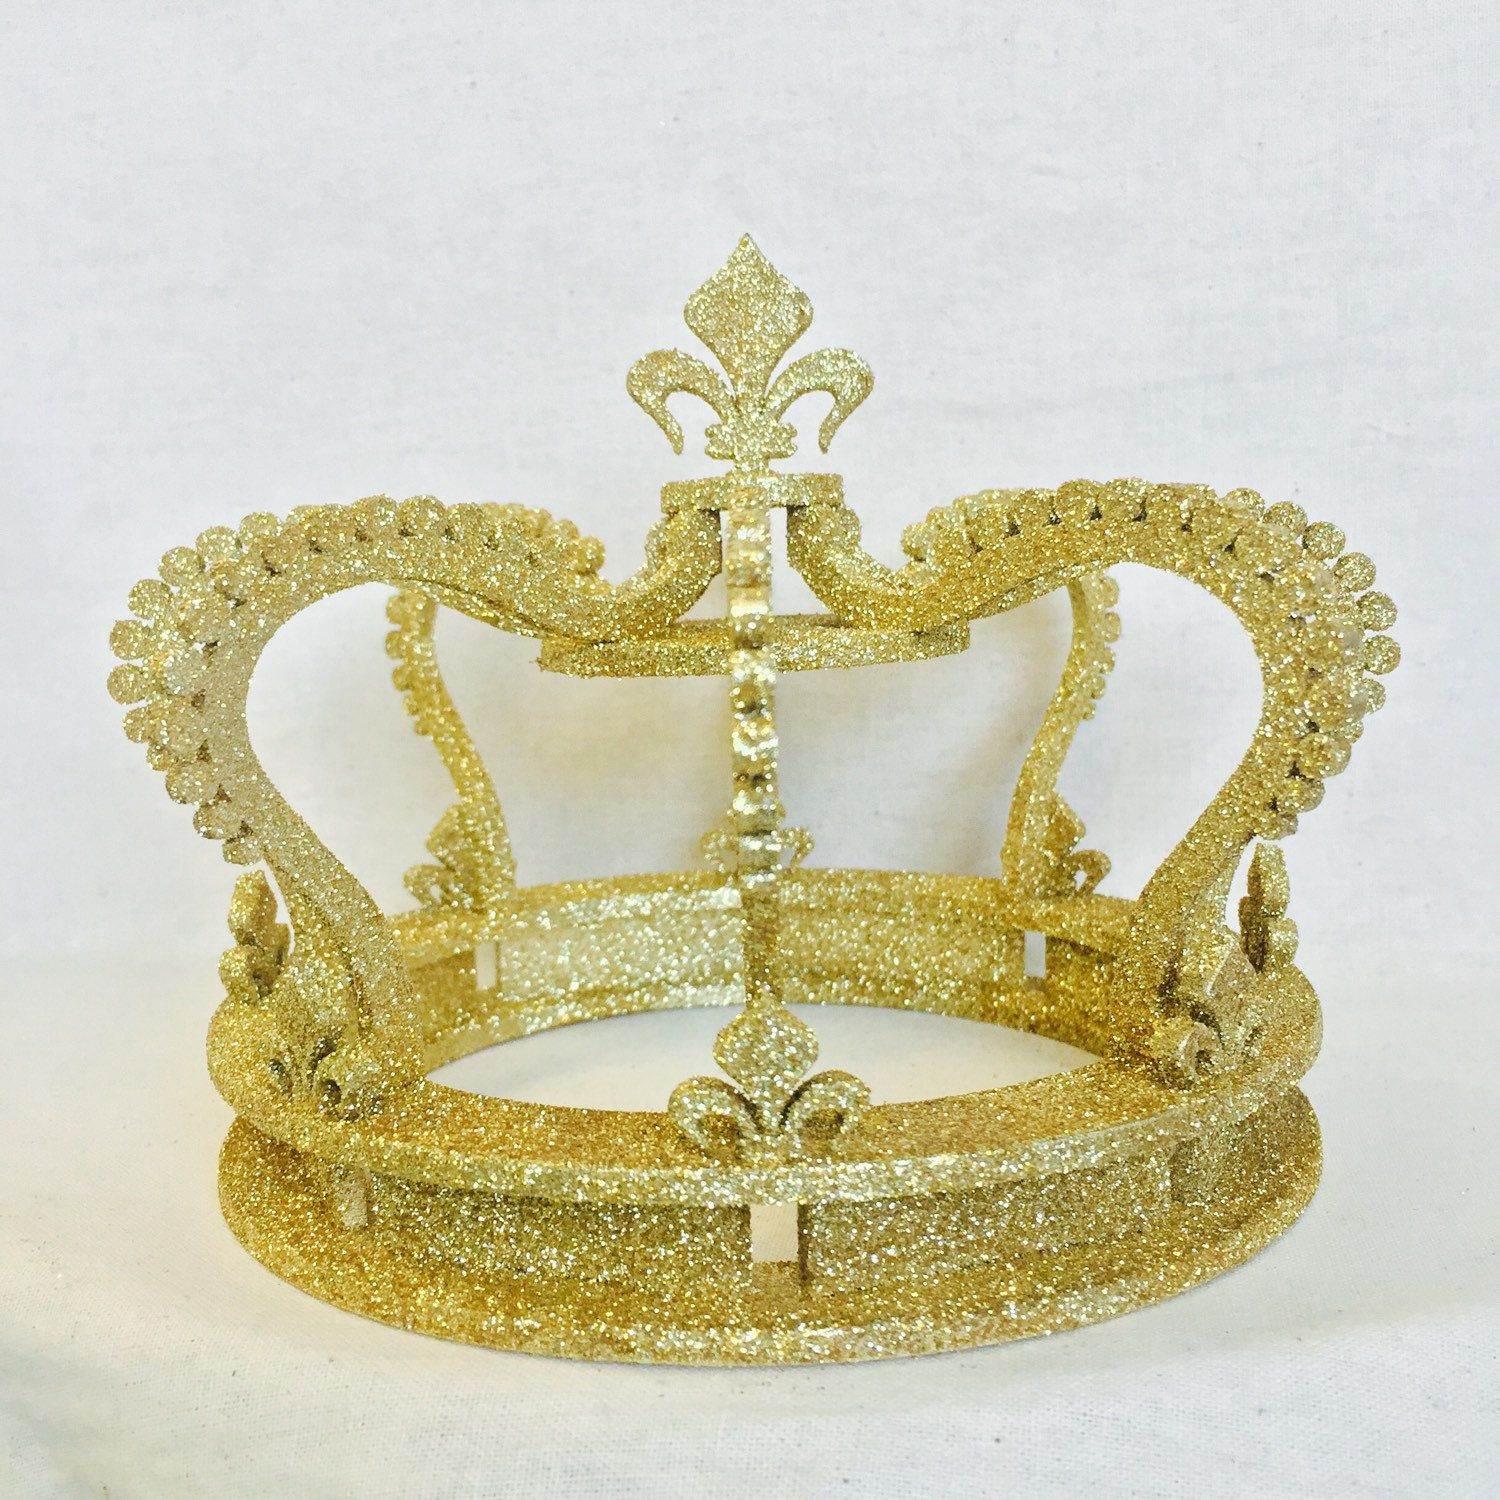 Gold Glitter Crown Cake Topper Wedding Cake Top Princess ...